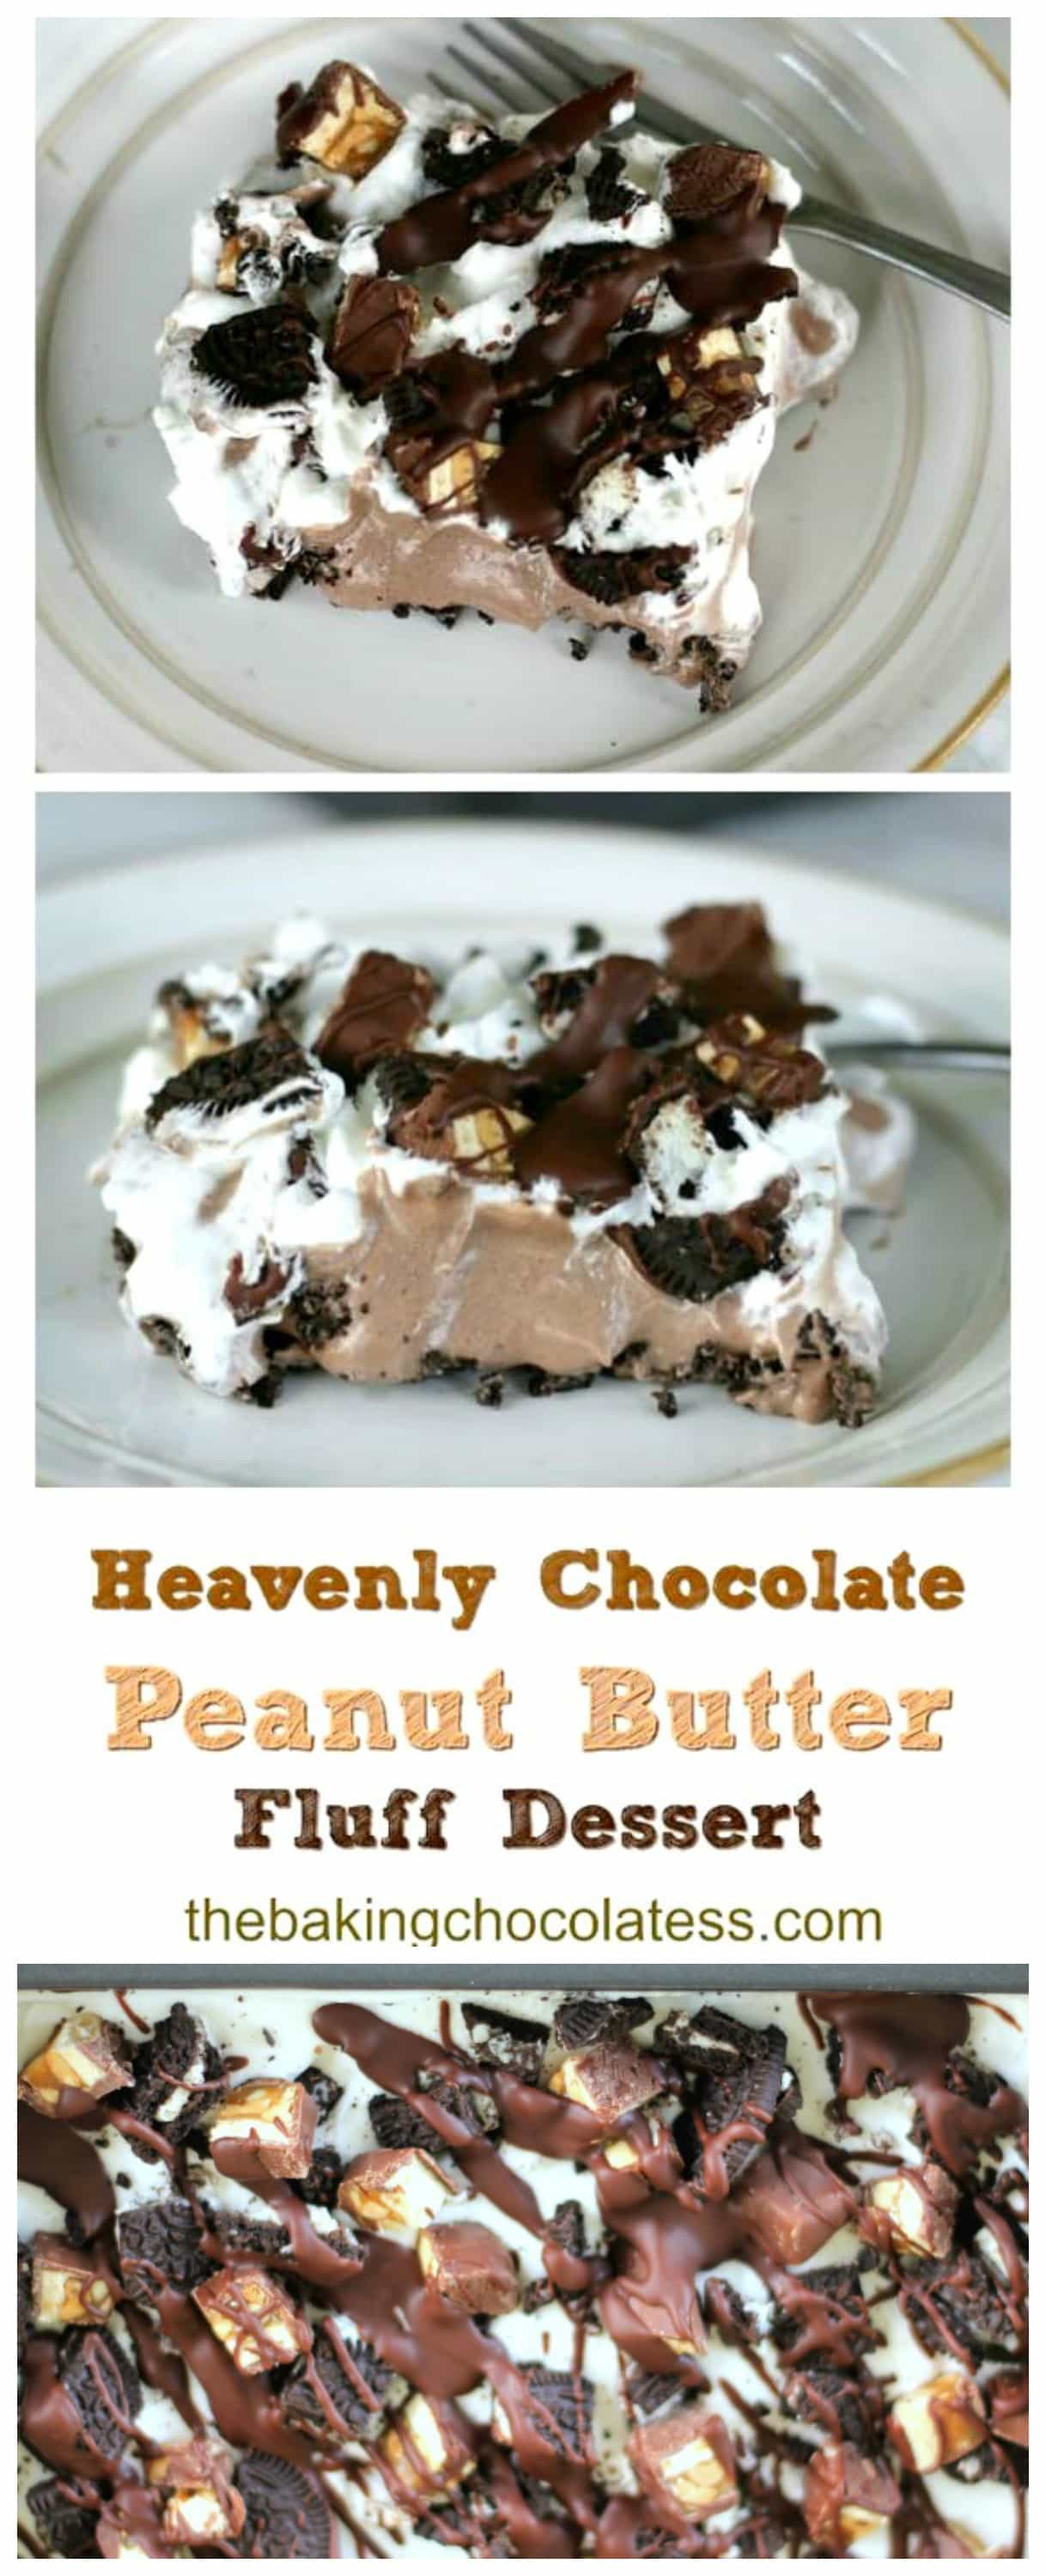 Heavenly Chocolate & Peanut Butter Fluff Dessert -Heavenly, decadent, luscious chocolate and peanut butter fluff dessert for any season! OREOS and Peanut Butter Snickers bits and chocolate and peanut butter drizzle take this sinful delight over the top!  #peanutbutter #chocolate #pudding #nobake #dessert #fluff #cheesecake #oreo